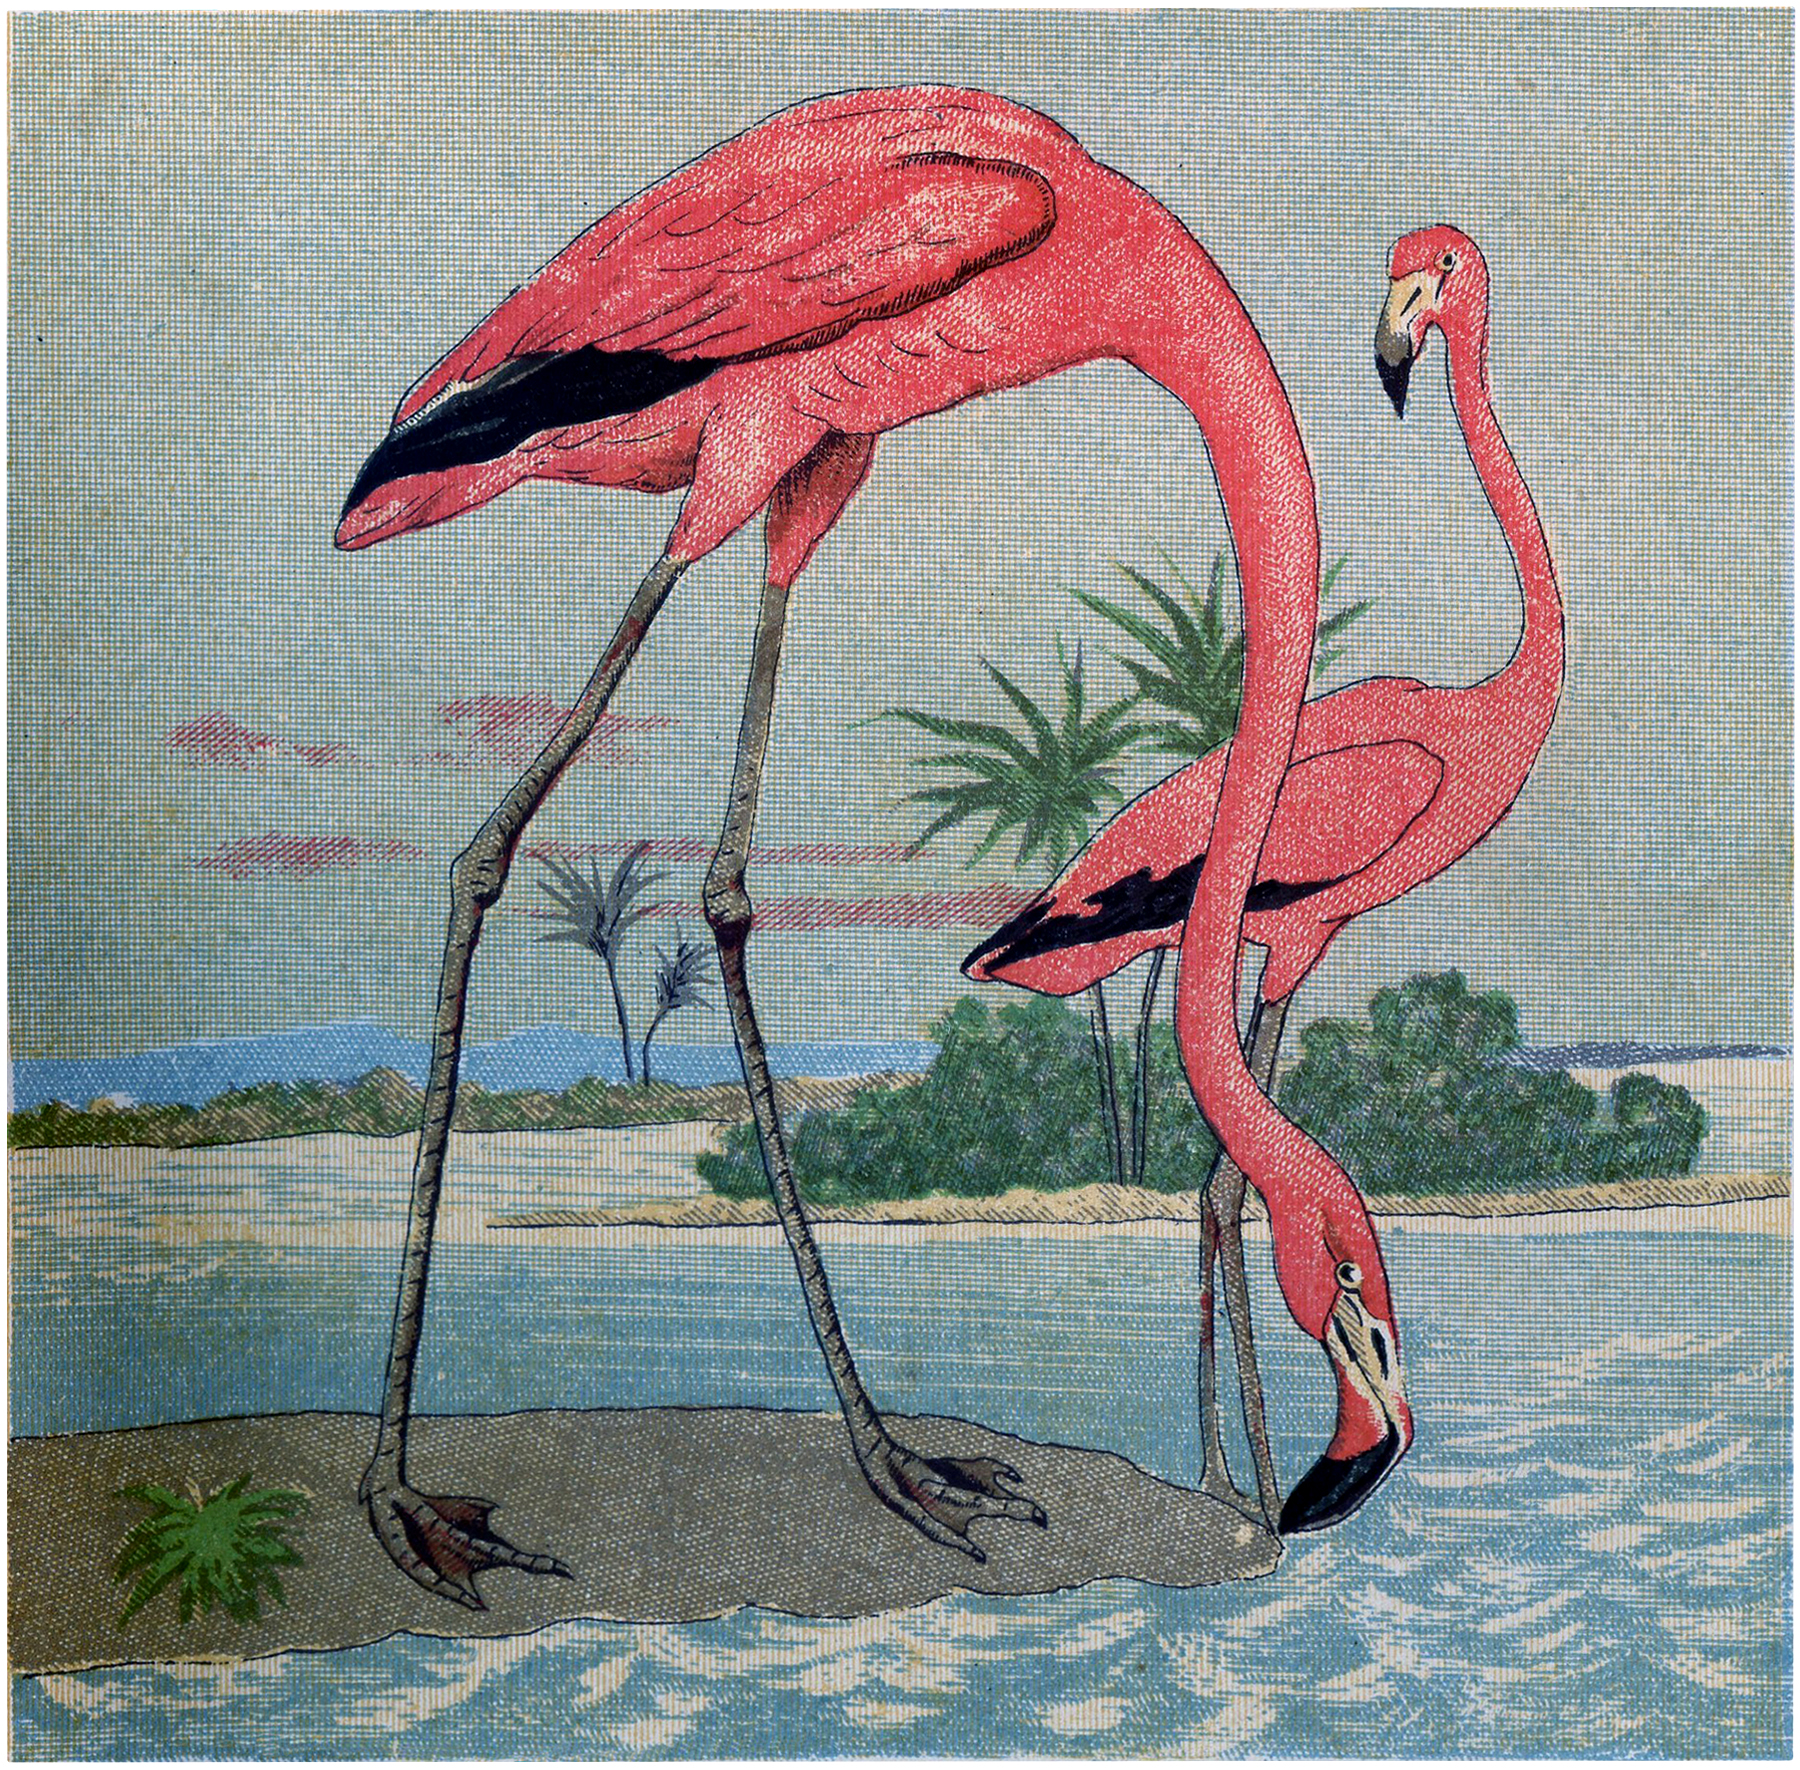 Free Flamingo Image Download